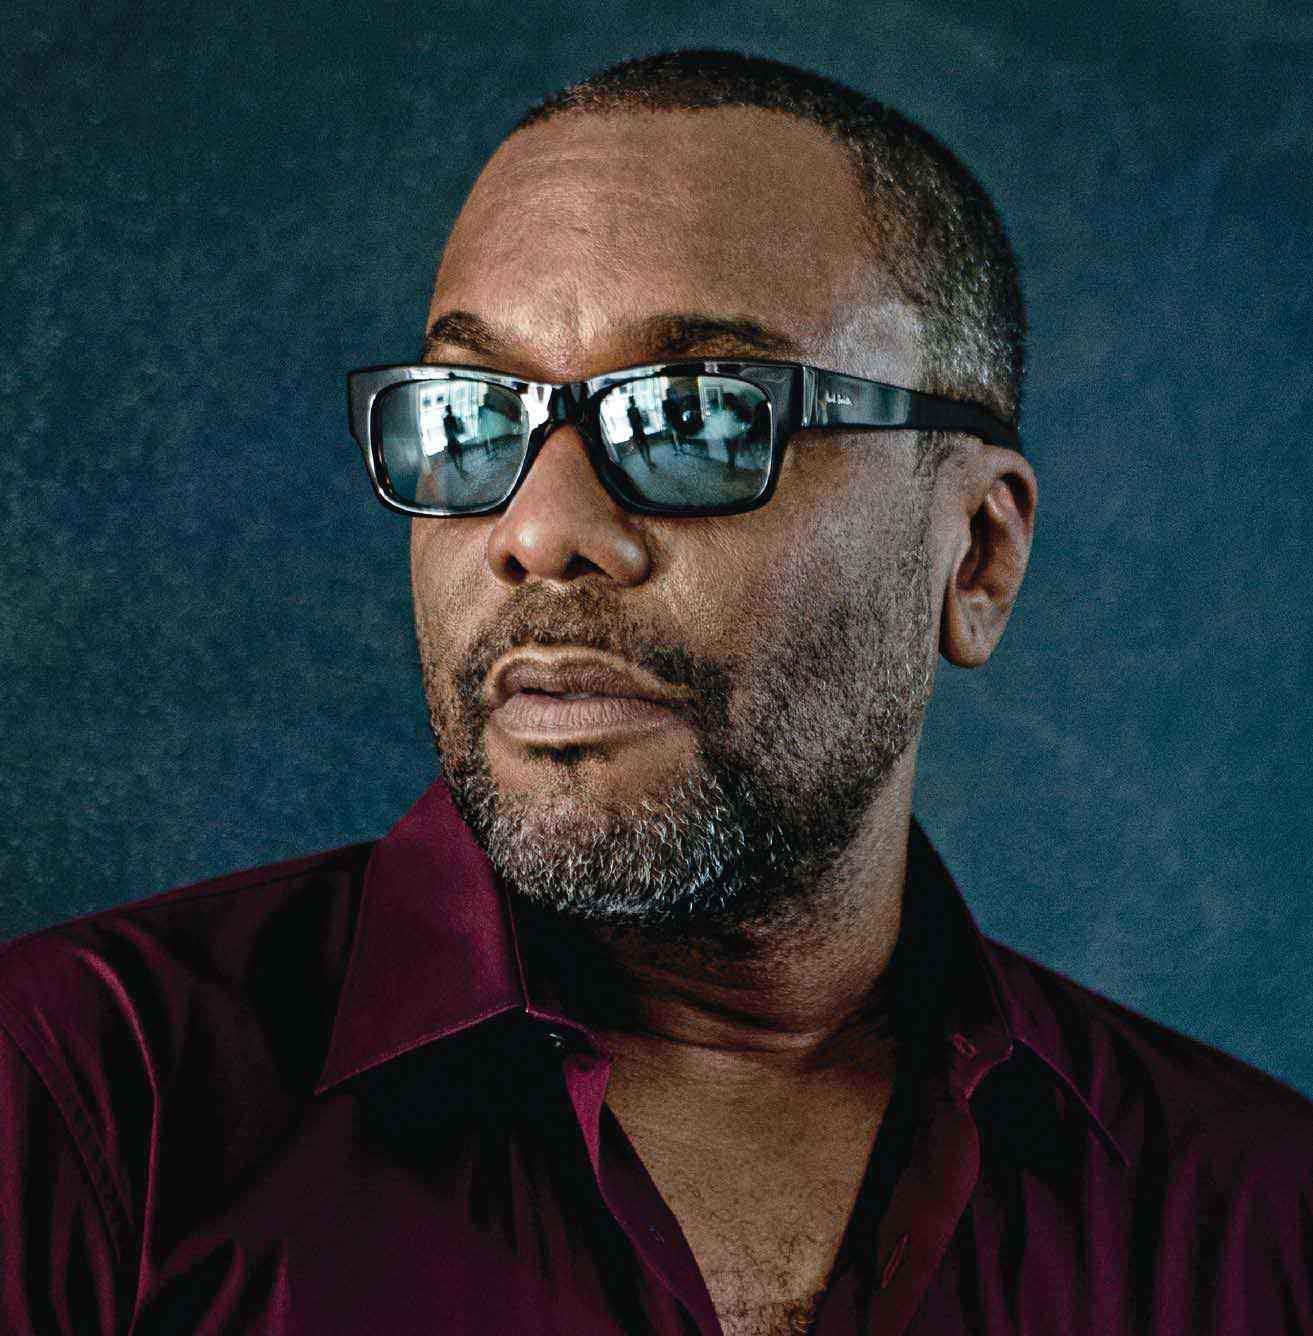 Lee Daniels Is Just Getting Started